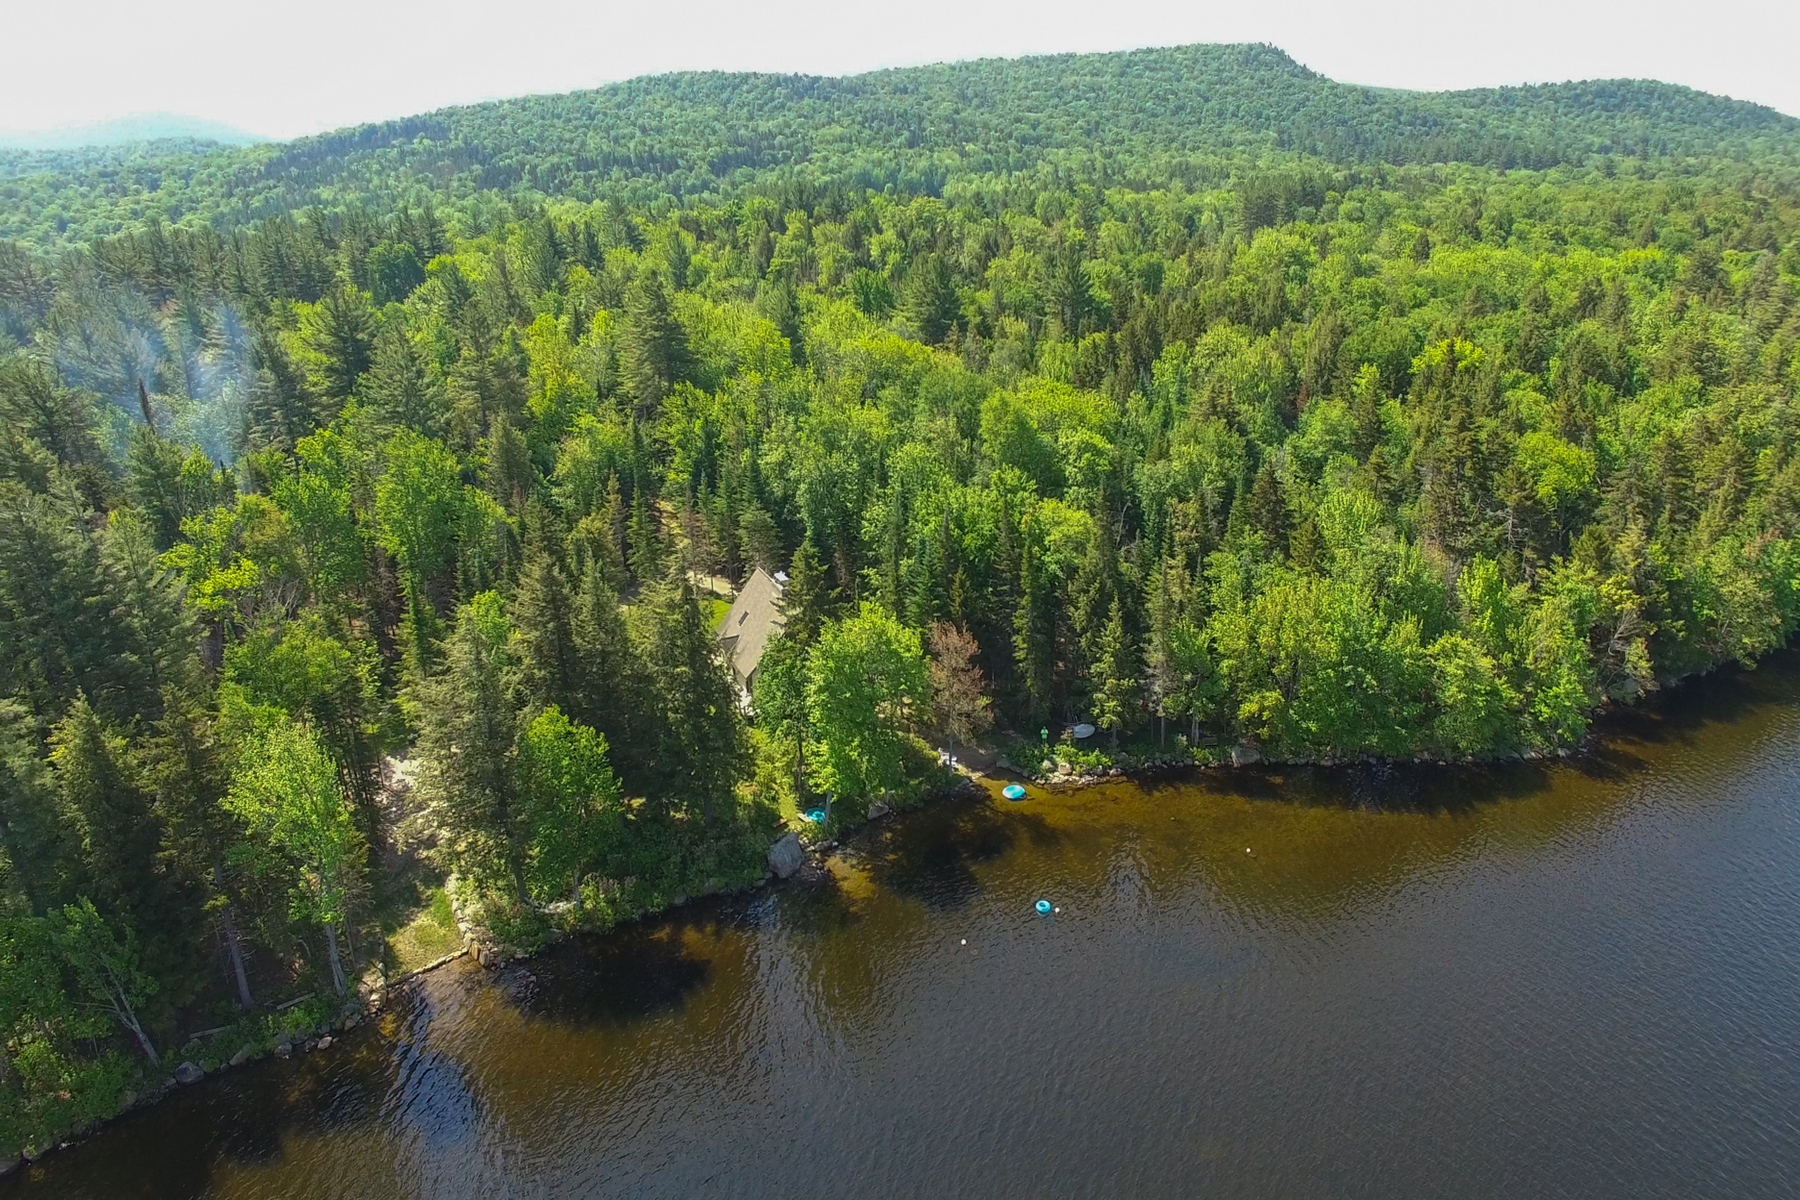 Single Family Home for Sale at Cozy Waterfront Cabin in Lake Pleasant, NY 345 B South Shore Rd Lake Pleasant, New York 12108 United States